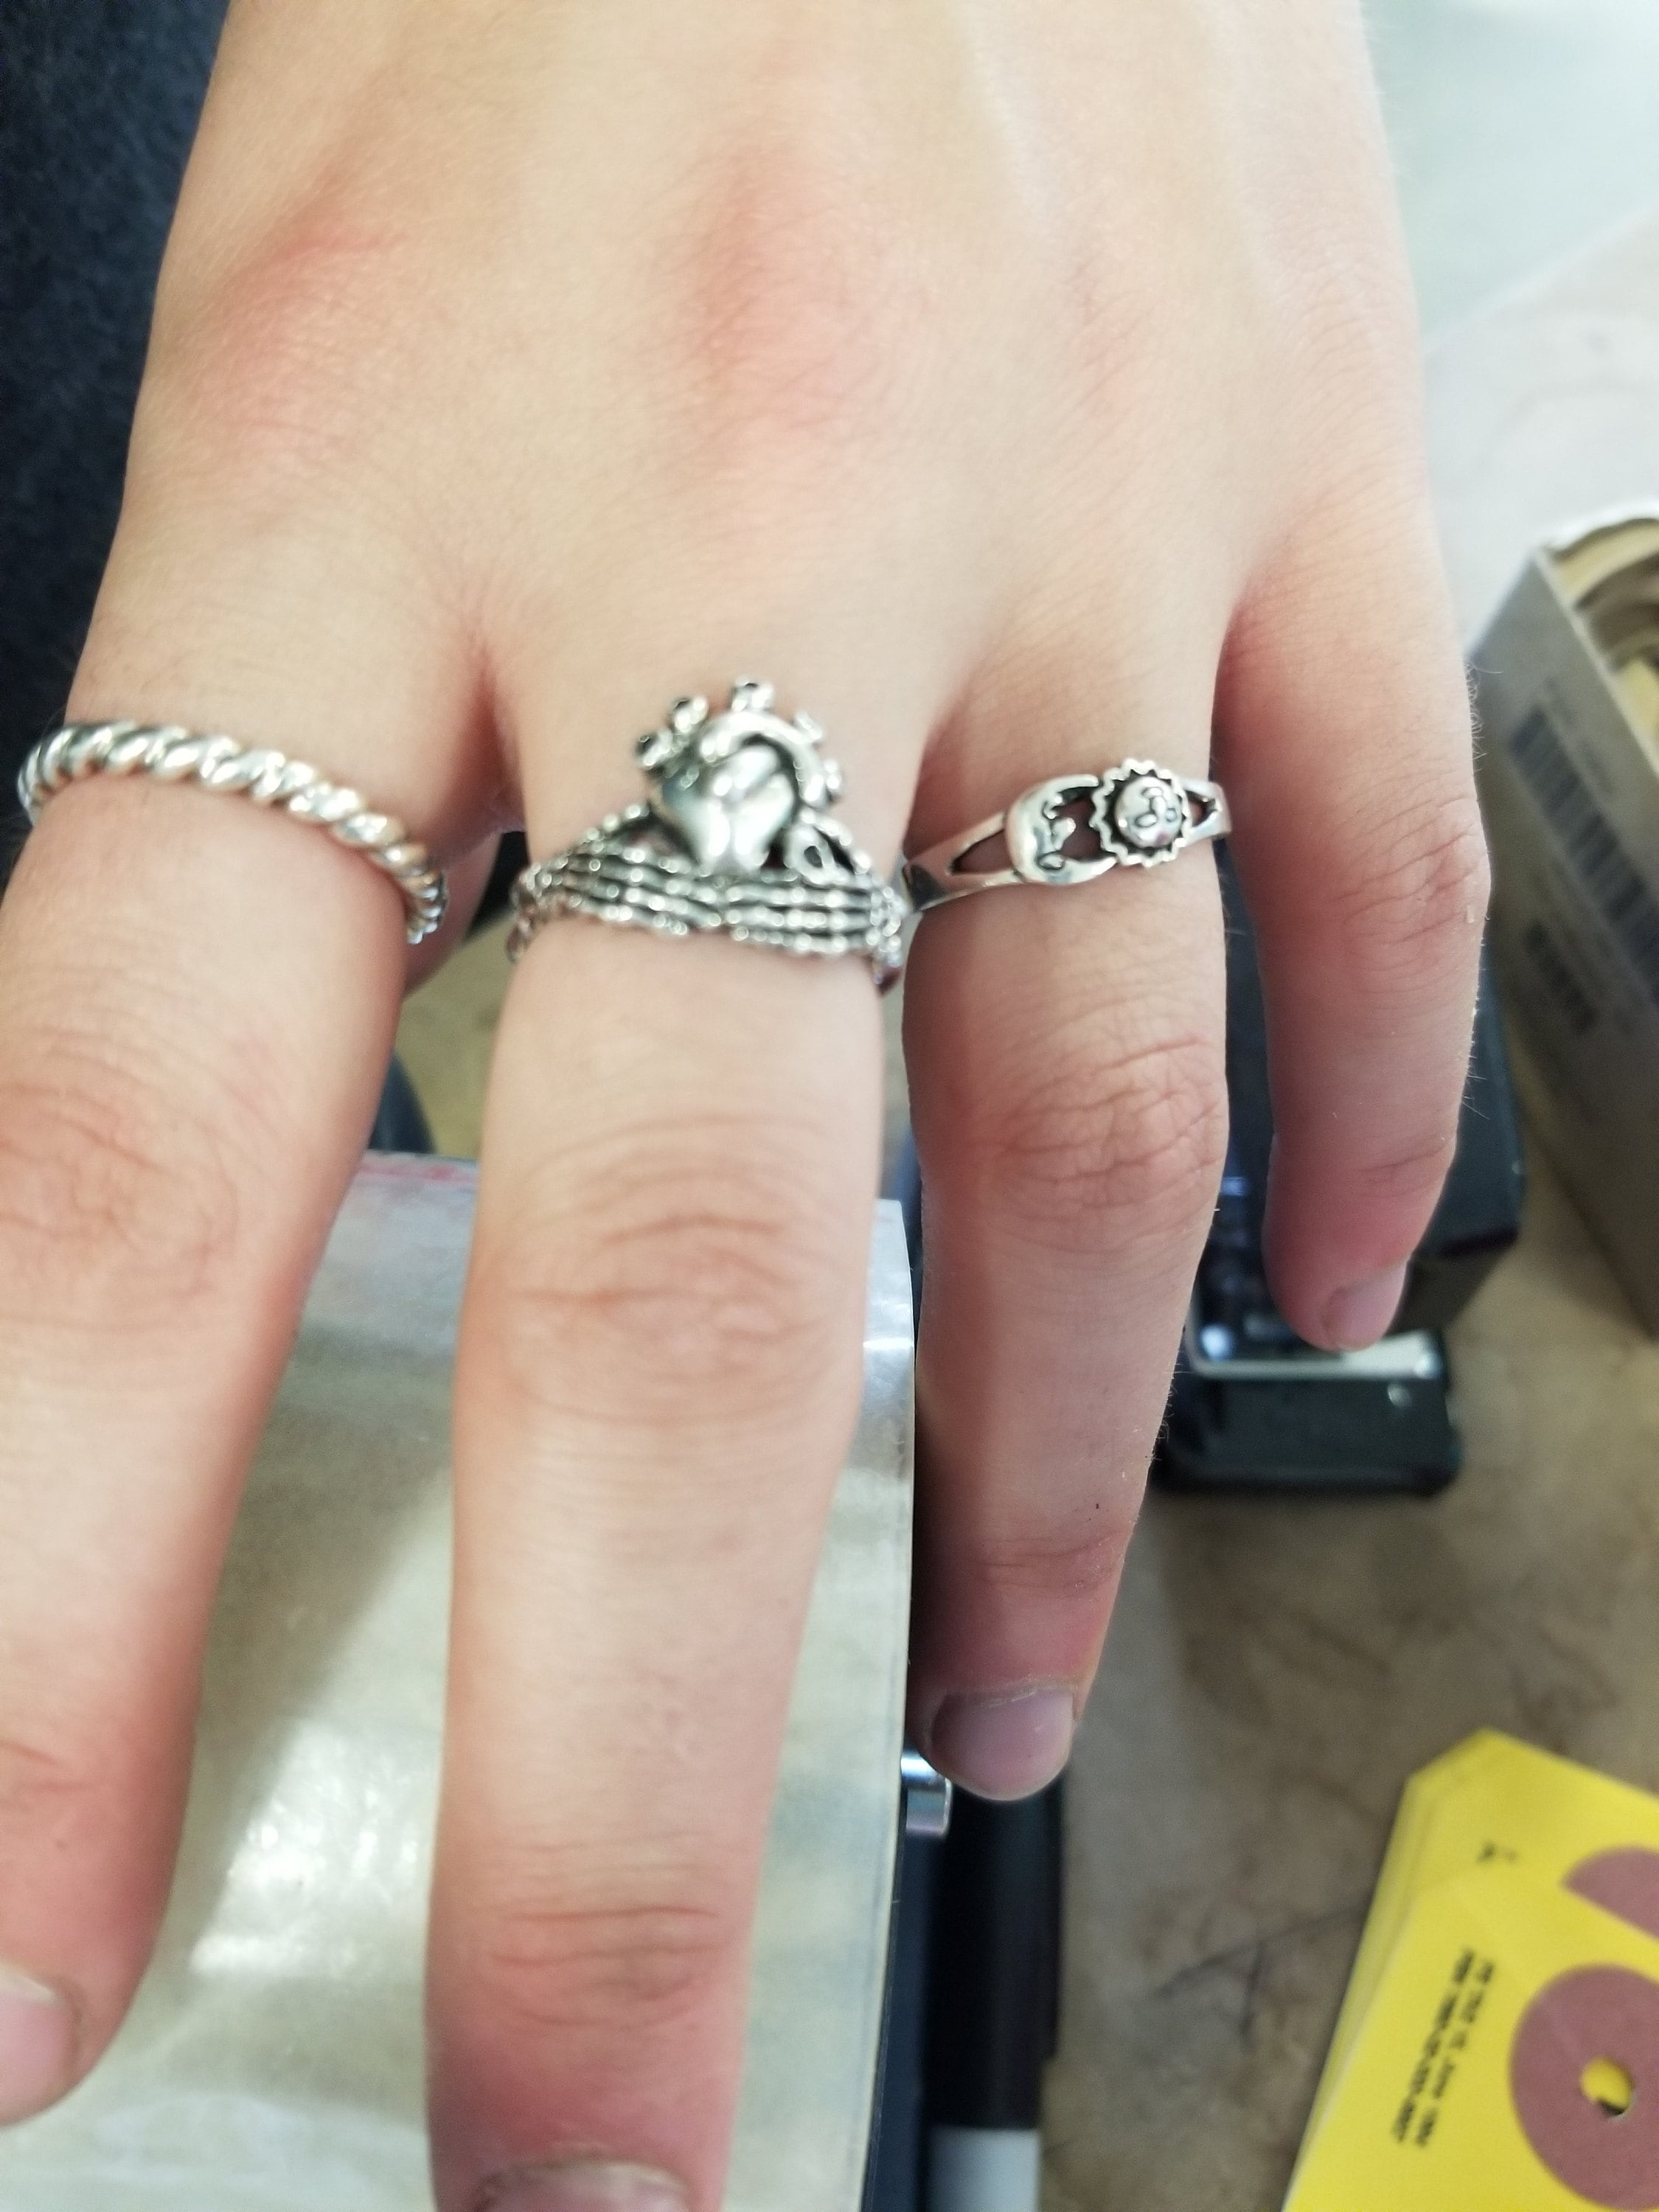 April Michael added a photo of their purchase